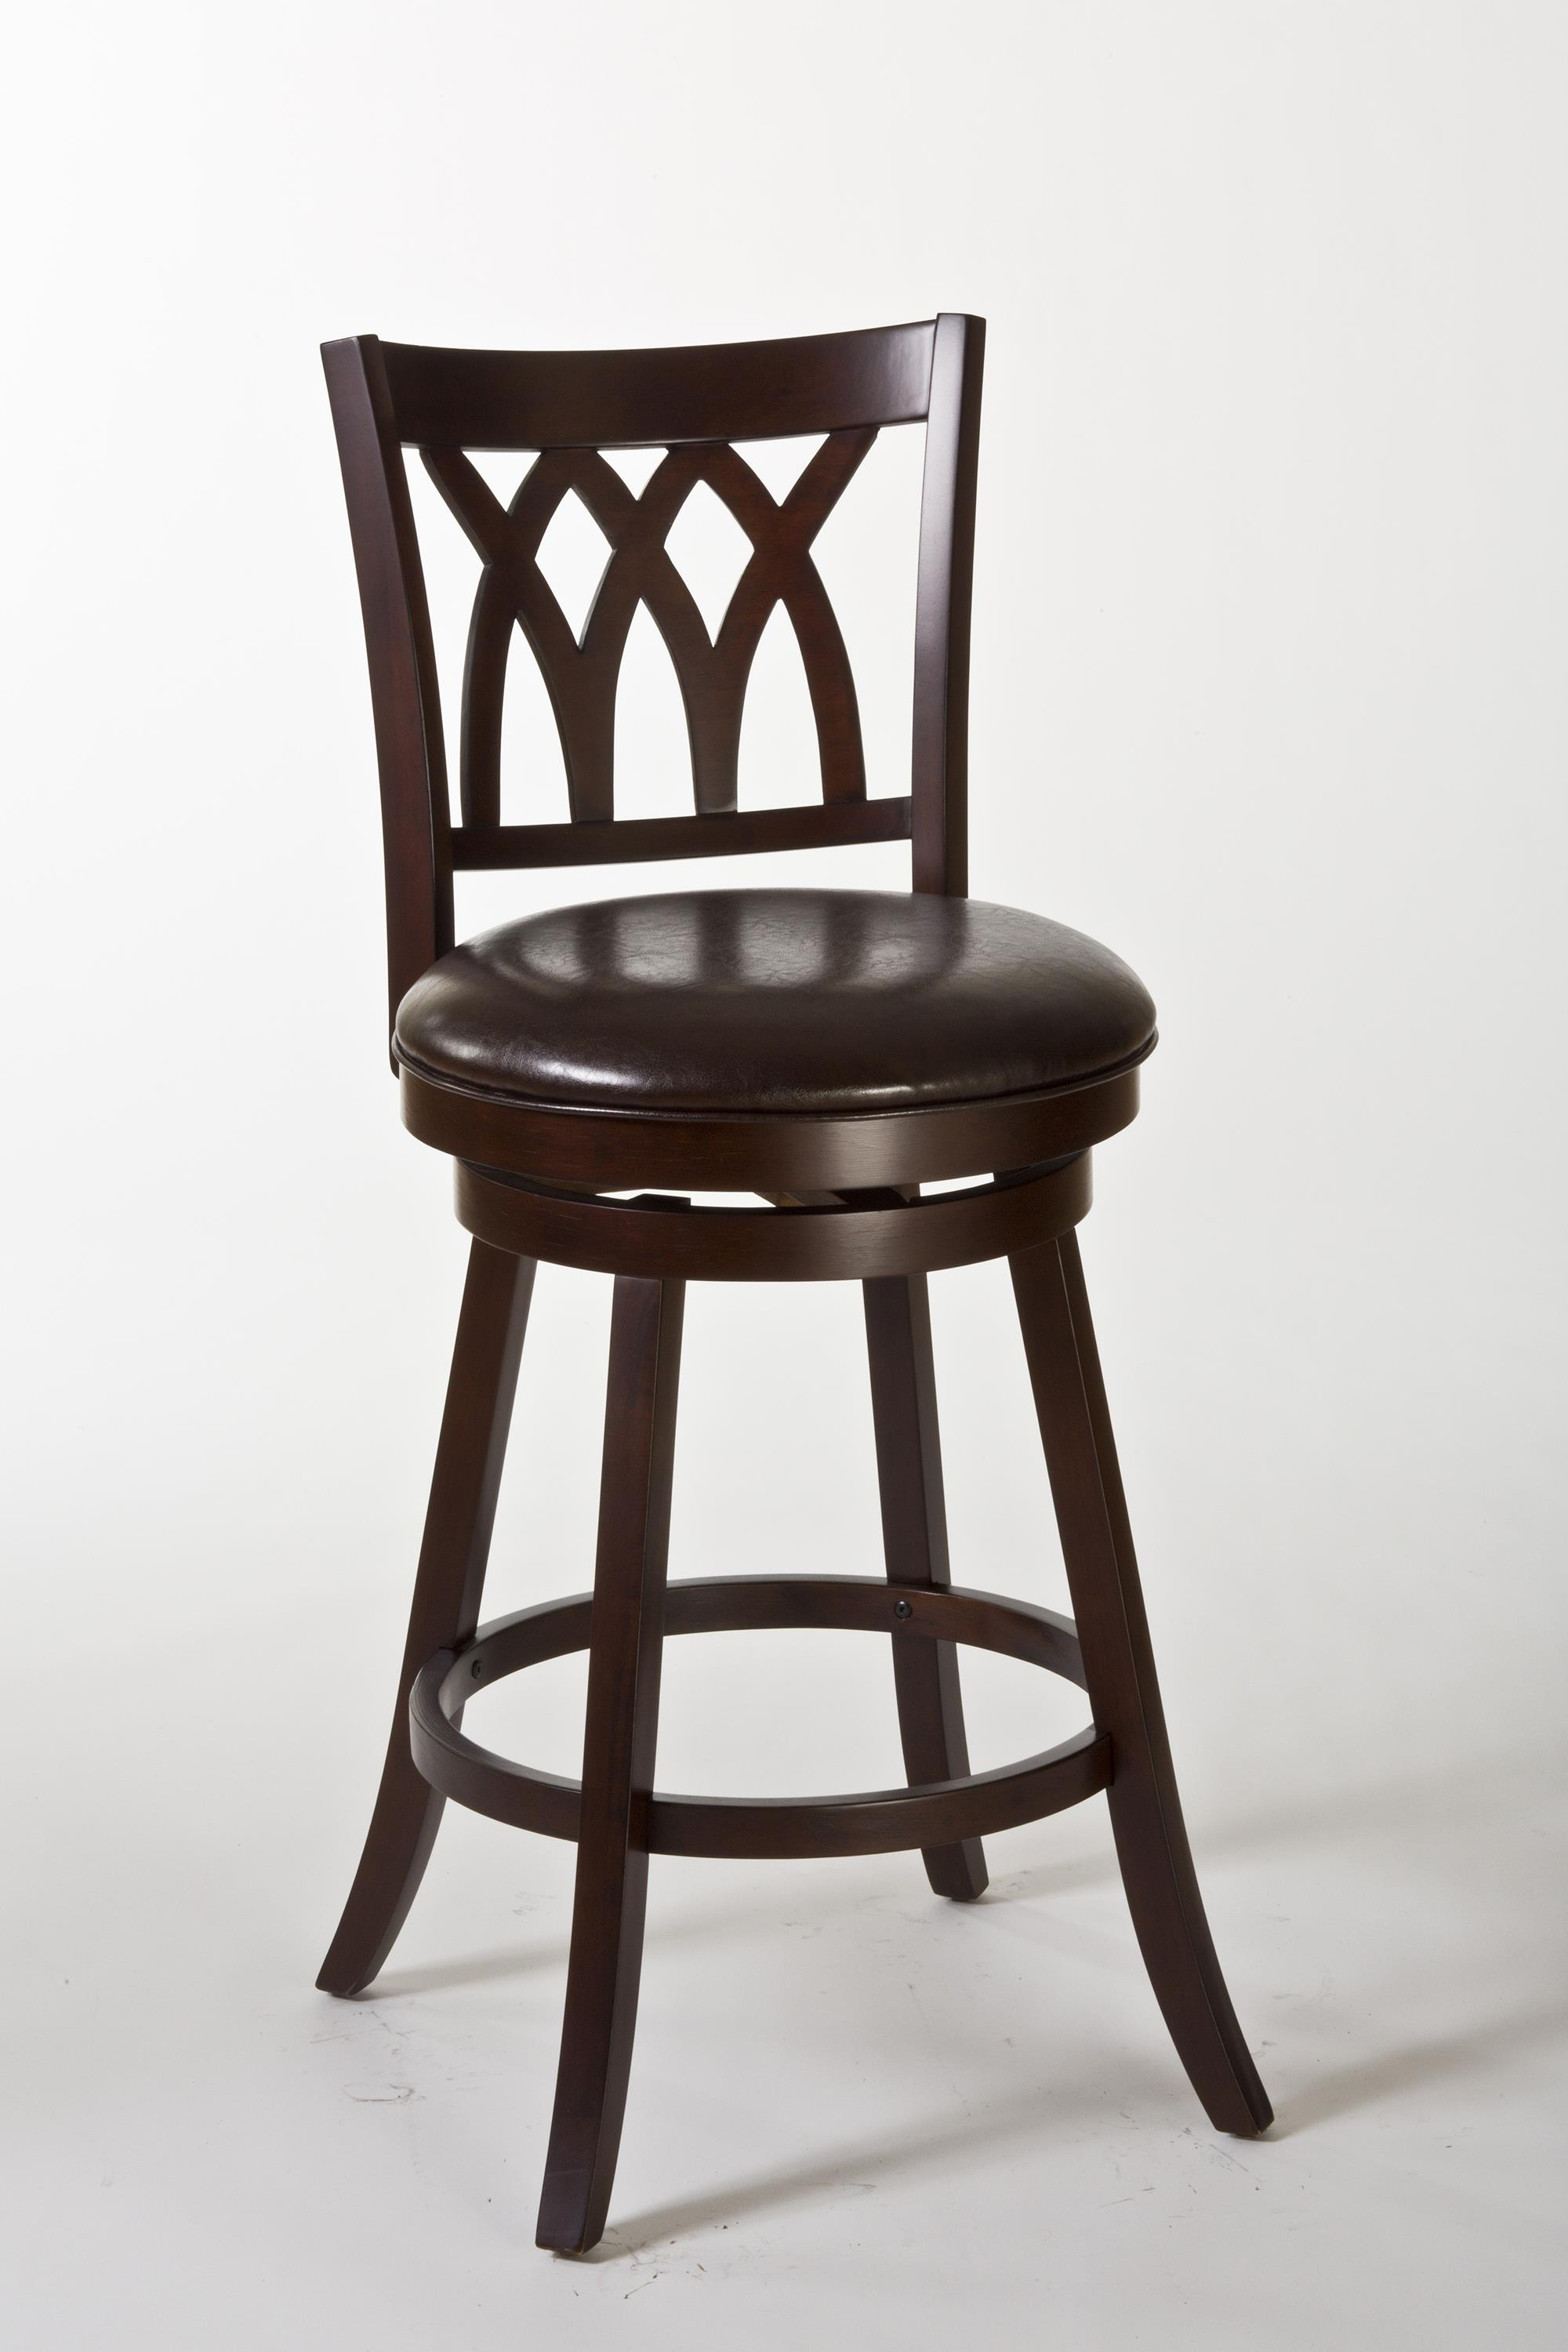 Incredible Hillsdale Wood Stools Tateswood Swivel Counter Stool With Caraccident5 Cool Chair Designs And Ideas Caraccident5Info